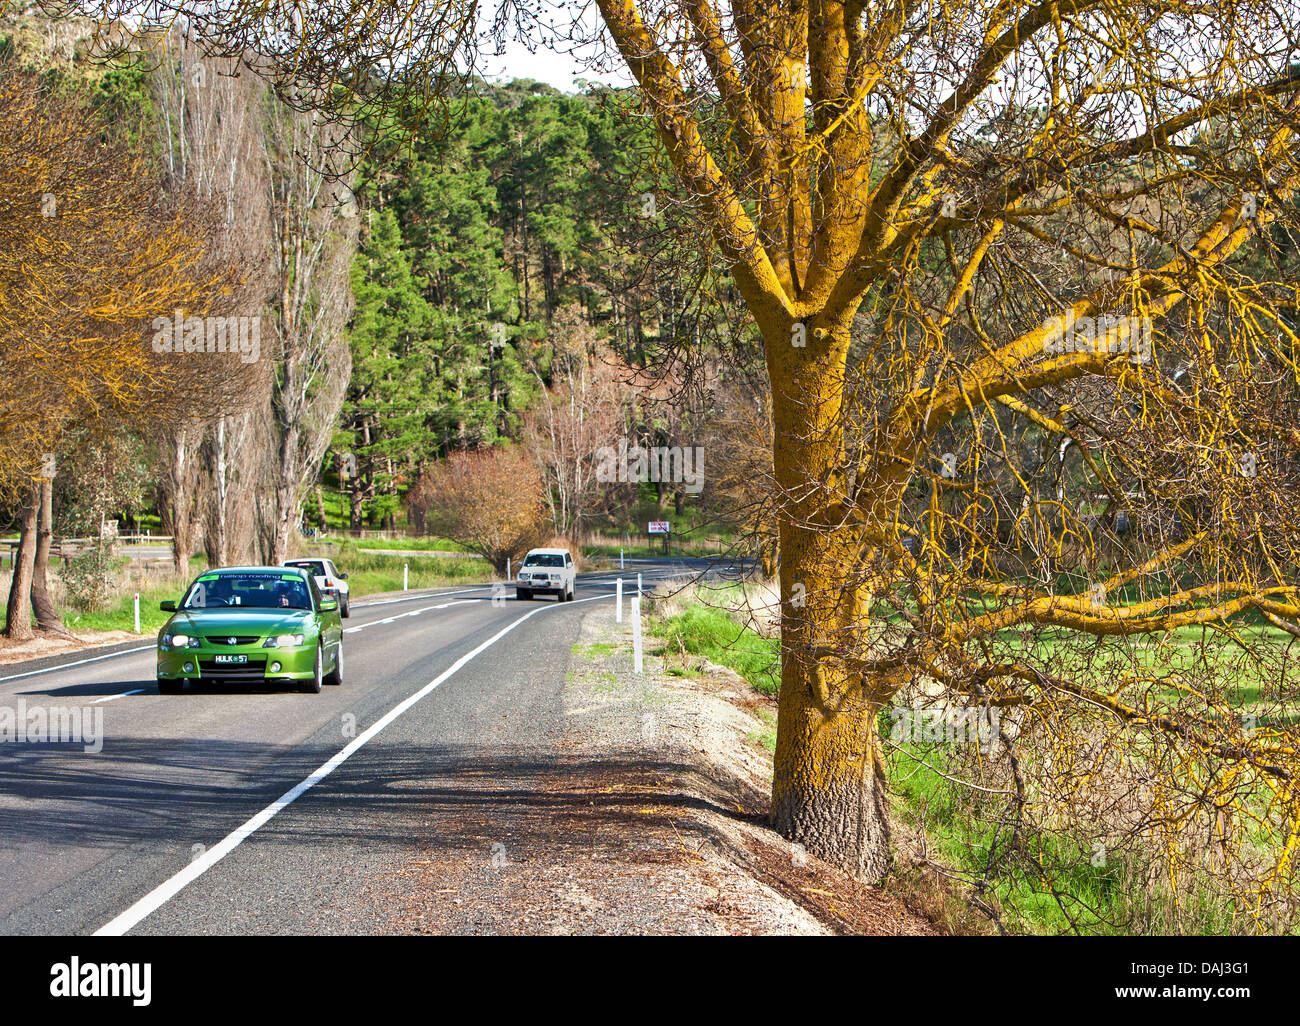 trees rural yellow lichen trunk branches cars road country side Fleurieu Peninsula South Australia Australian - Stock Image